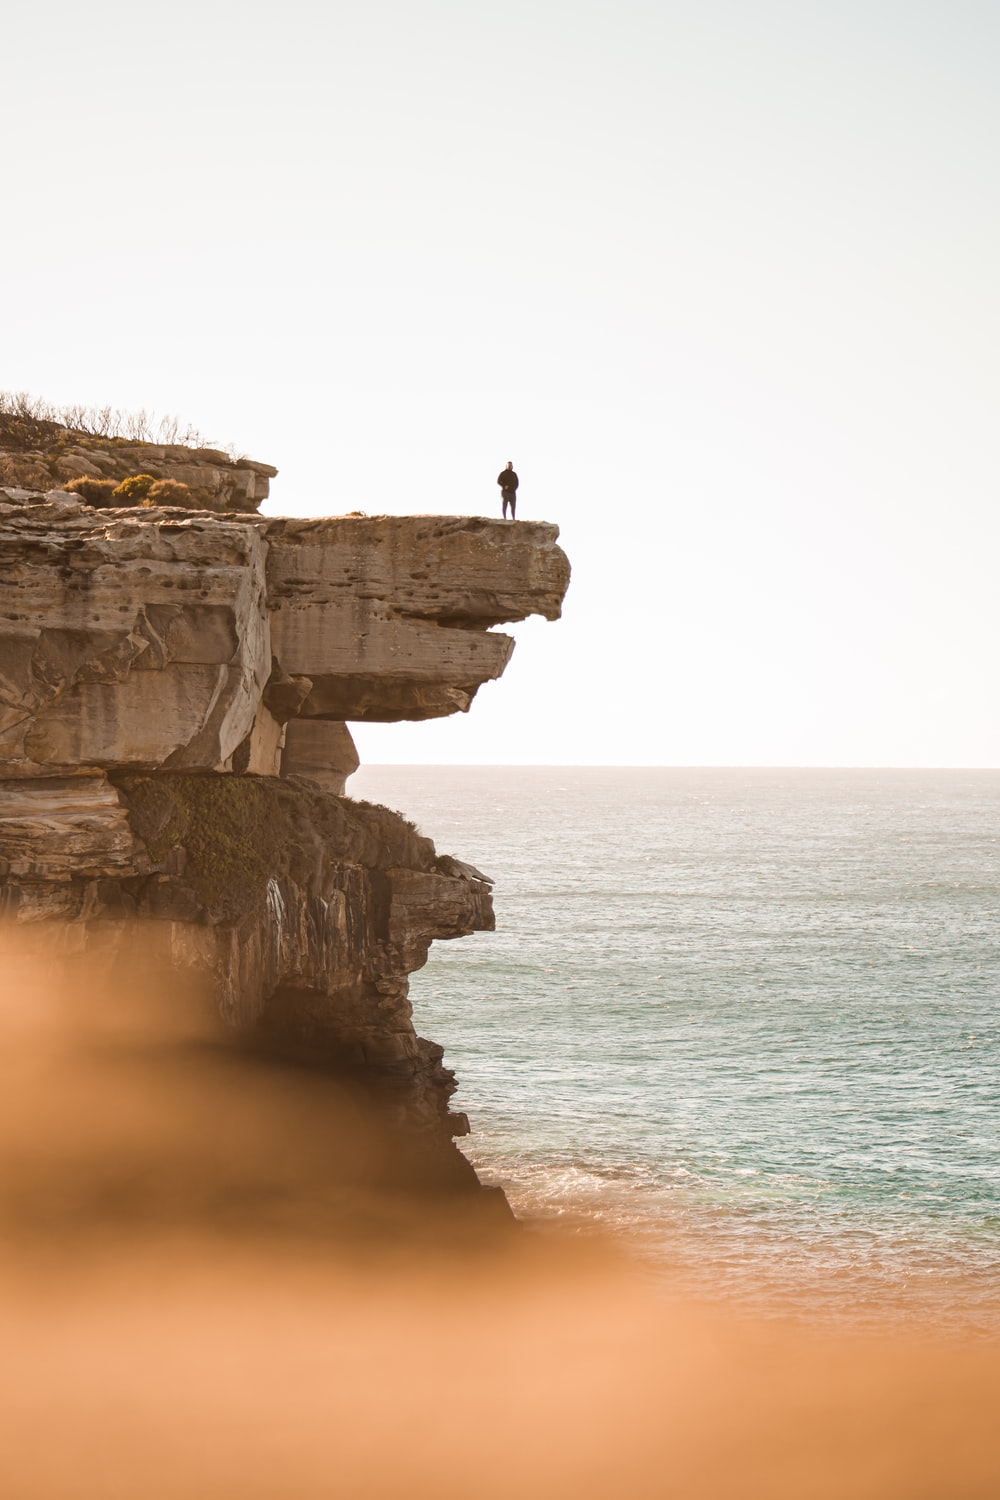 person standing on rocky cliff near body of water during daytime